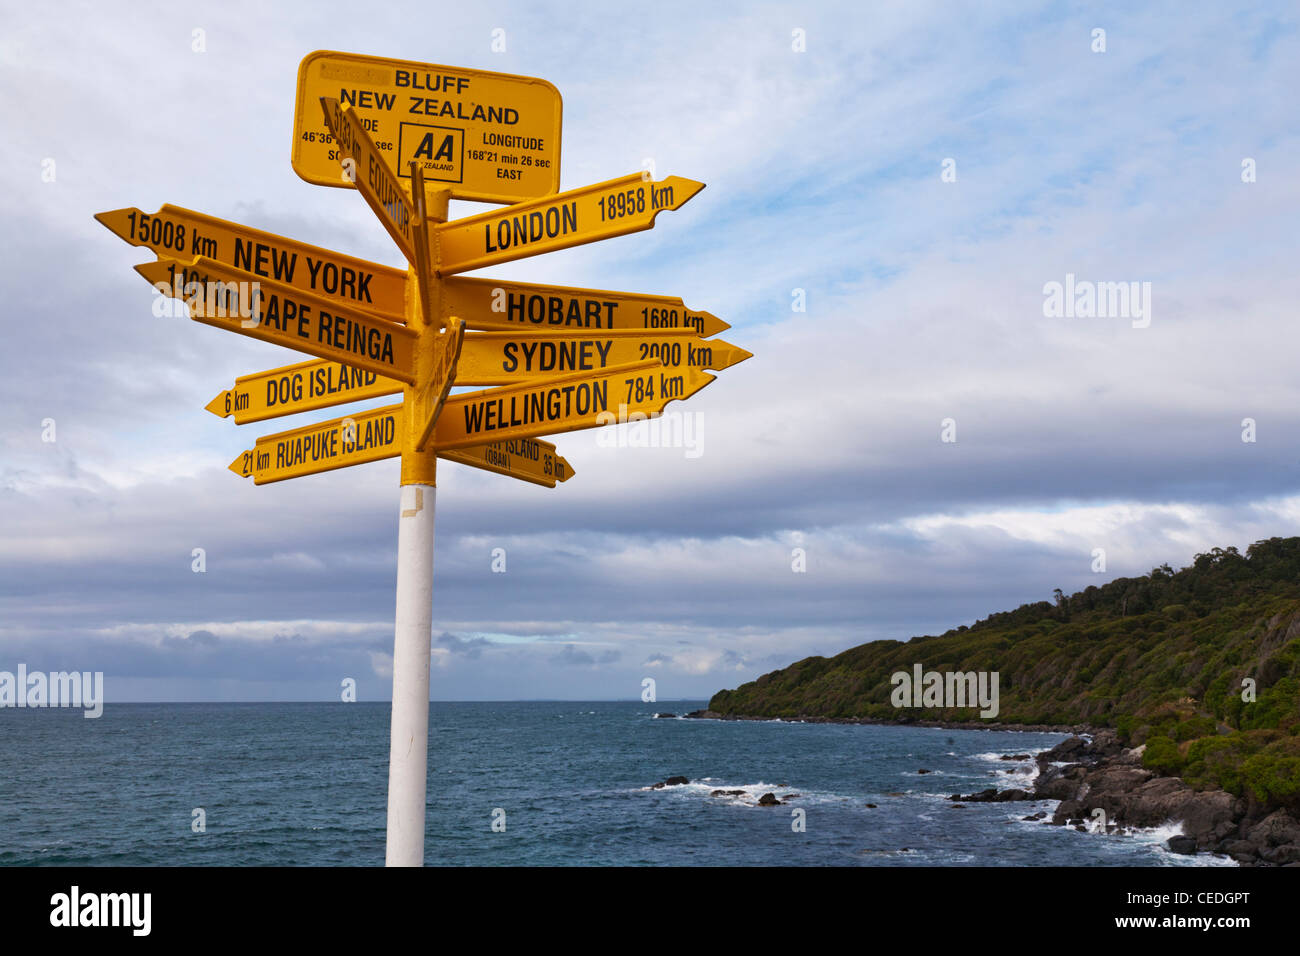 Famous sign at Bluff in the South Island of New Zealand, showing distance to various cities. - Stock Image